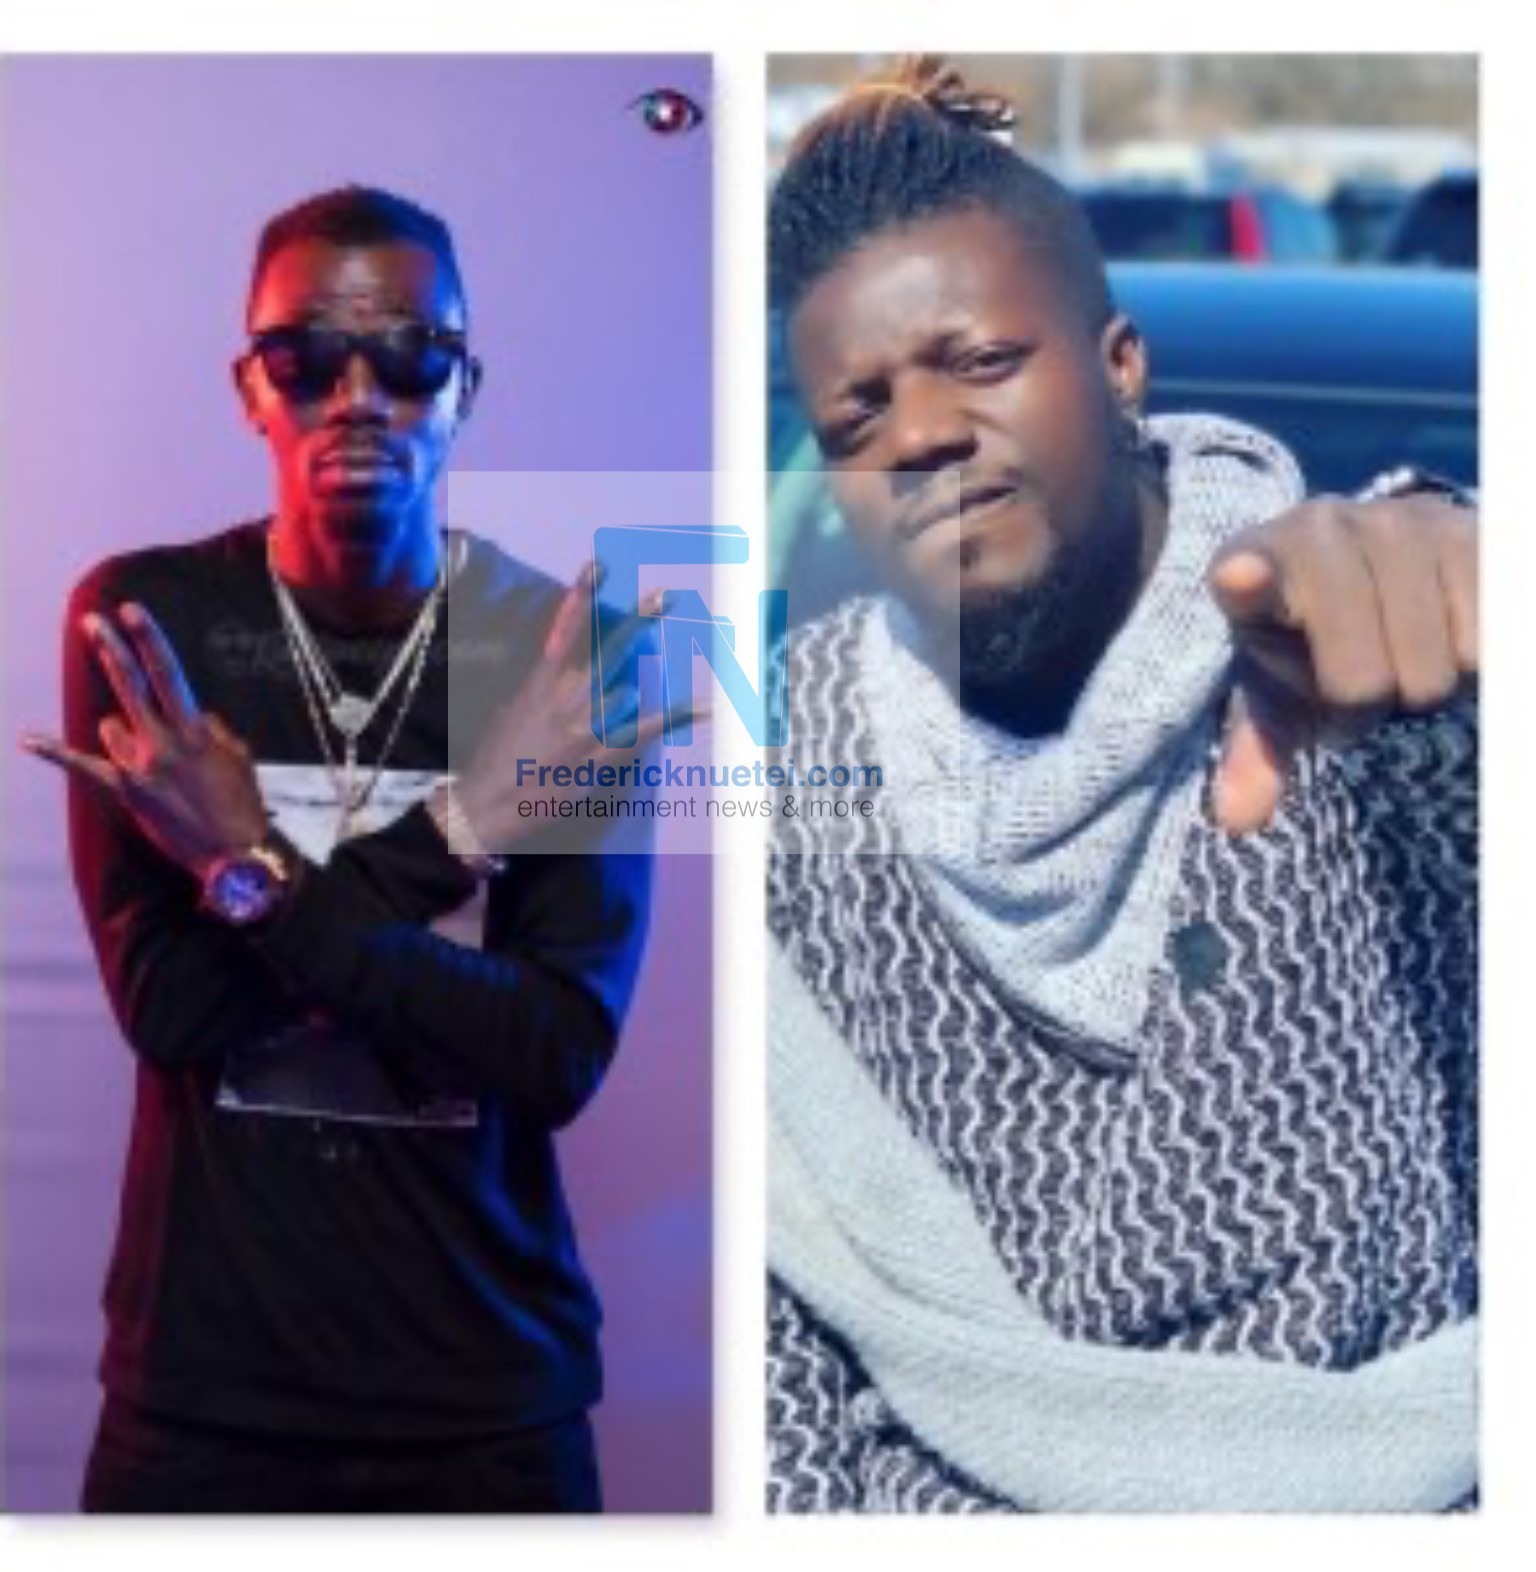 Sing Praises Of Shatta Wale's Efforts Instead Of Mockery - Joint 77 Advice To Pope Skinny